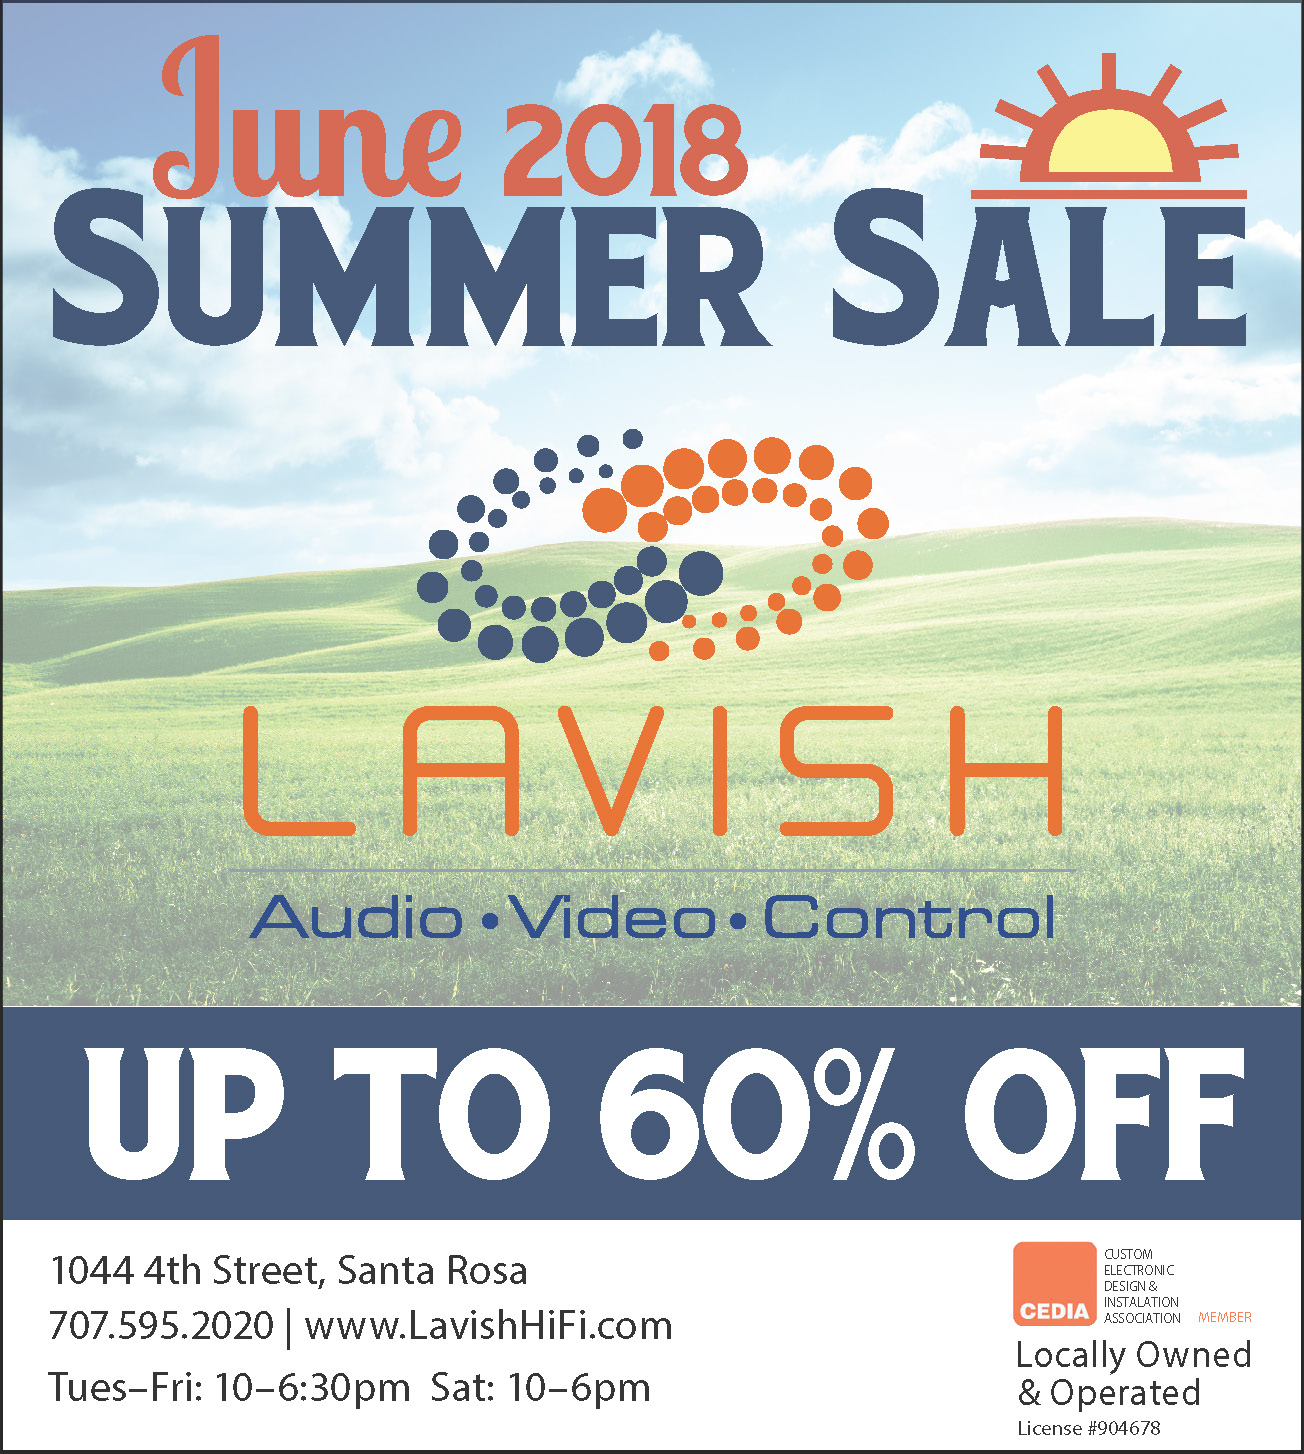 June 2018 Sale - Up to 60% off!